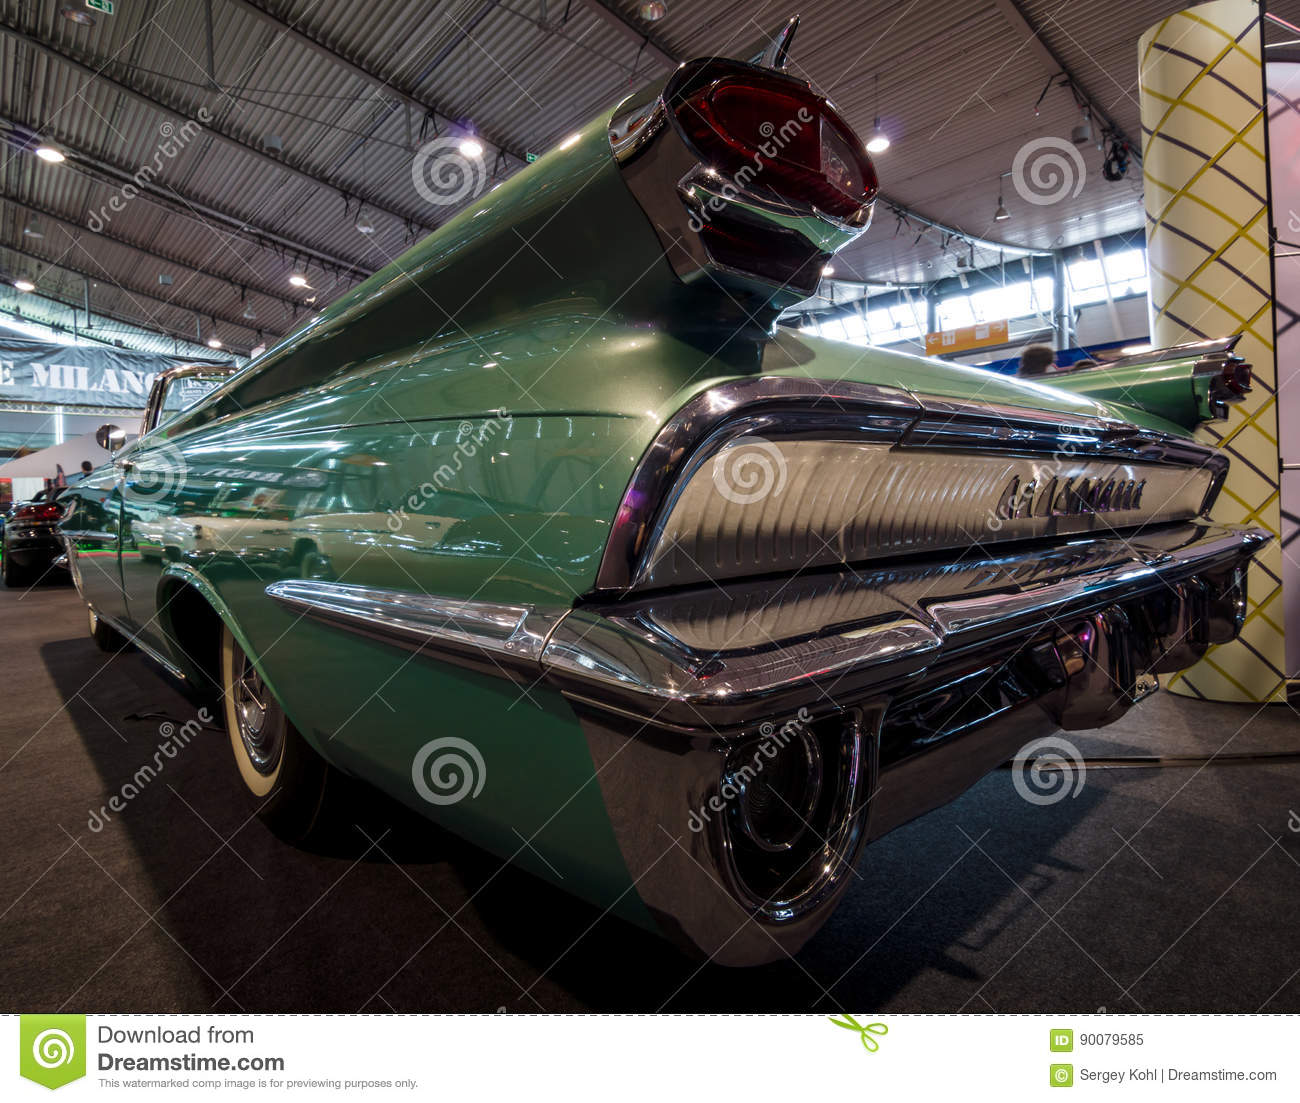 View Full Size: Rear View Of A Full-size Car Oldsmobile Super 88